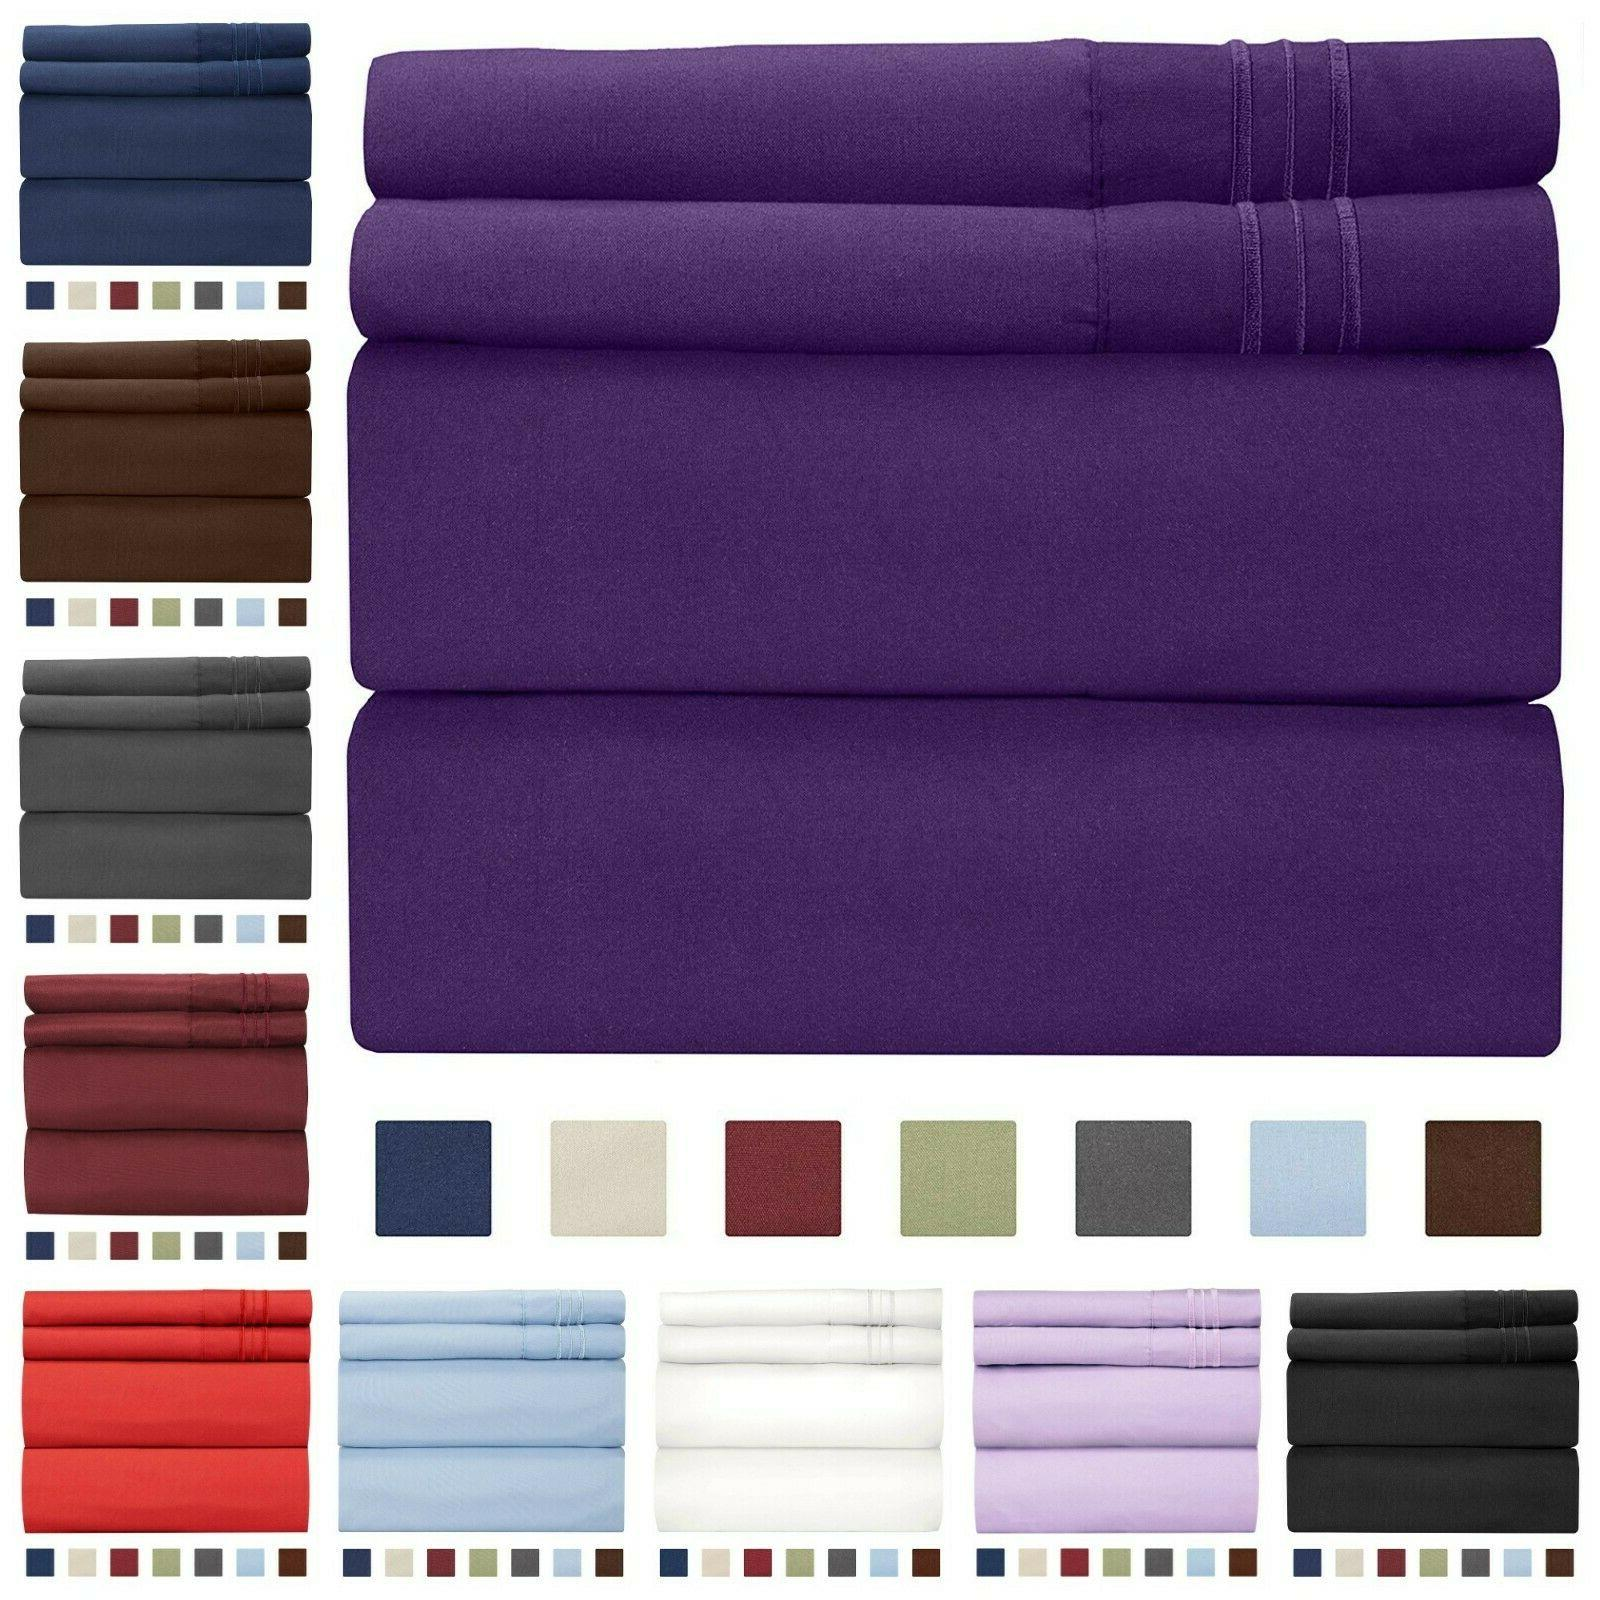 queen size sheet set wrinkle free breathable